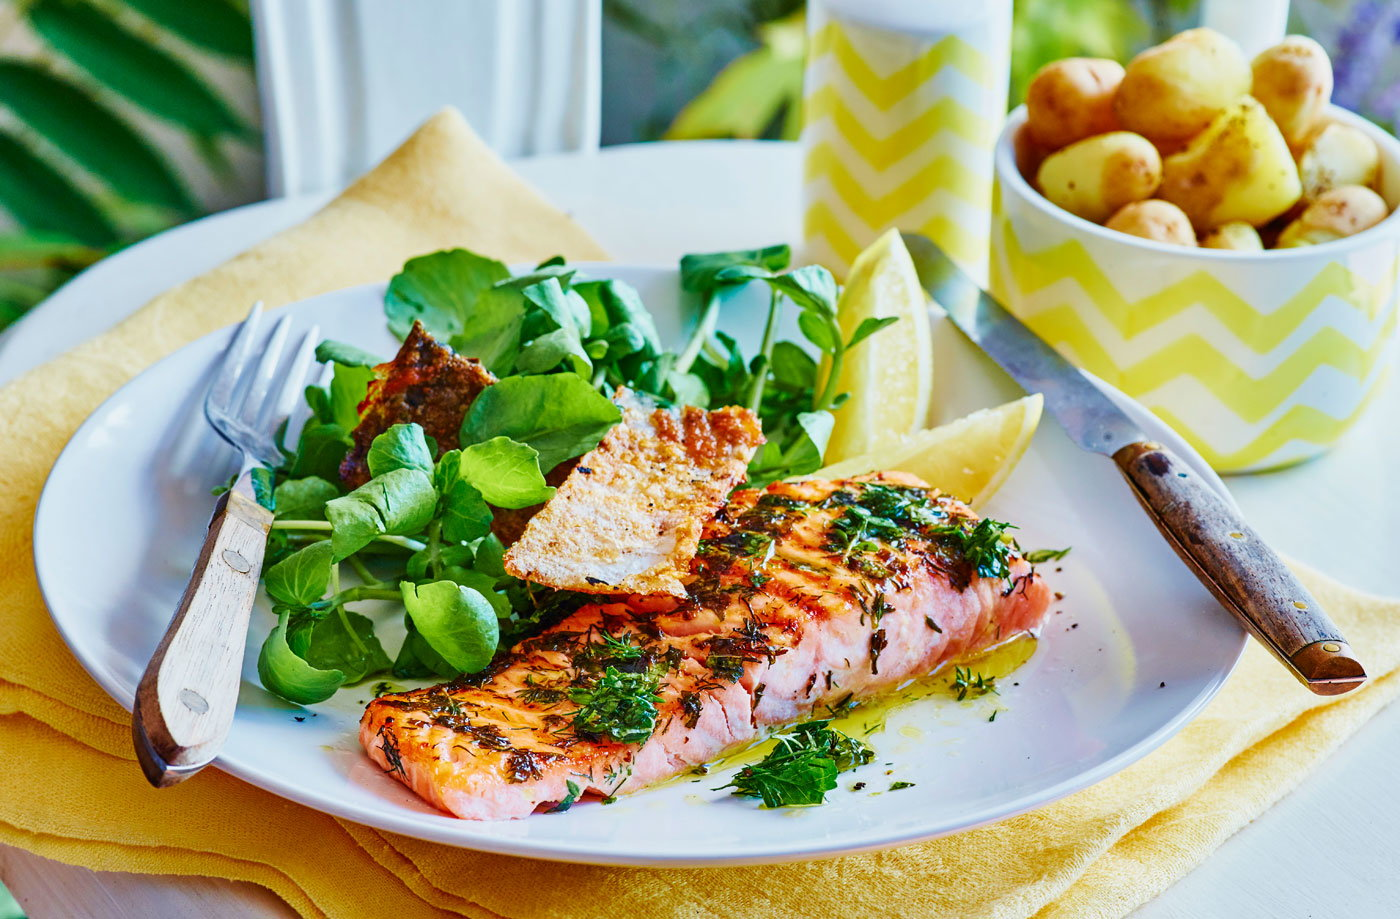 Barbecued lemon and herb salmon recipe